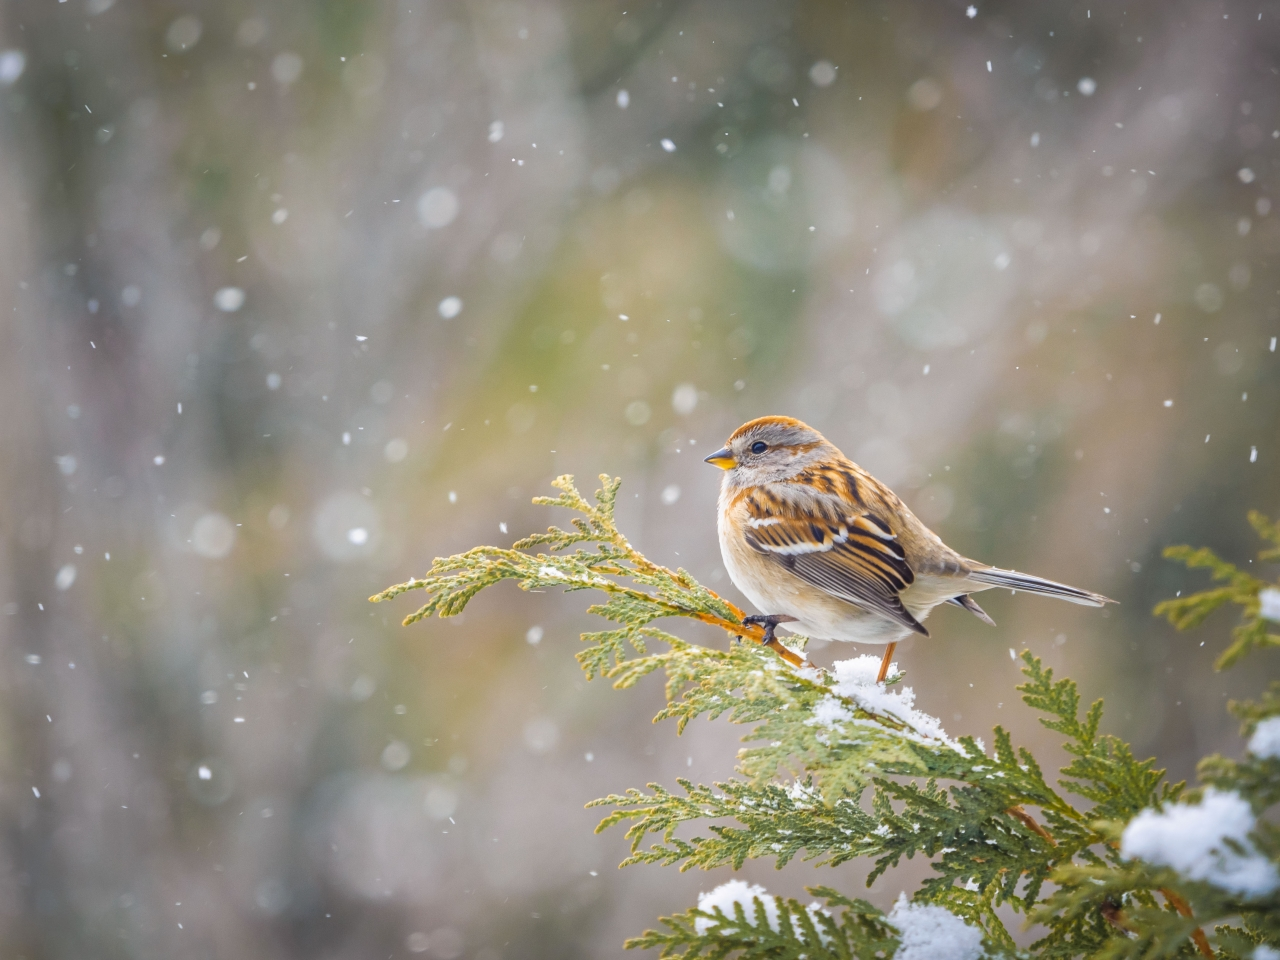 Winter Sparrow - Winner - Effective Depth of Field Category - Brian Gibson 201 Winter Challenge  Photographer's comment:  Waiting for a turn at the feeder this sparrow was perfectly perched on the snow covered hedge for a New Year's portrait as the snow continued falling.